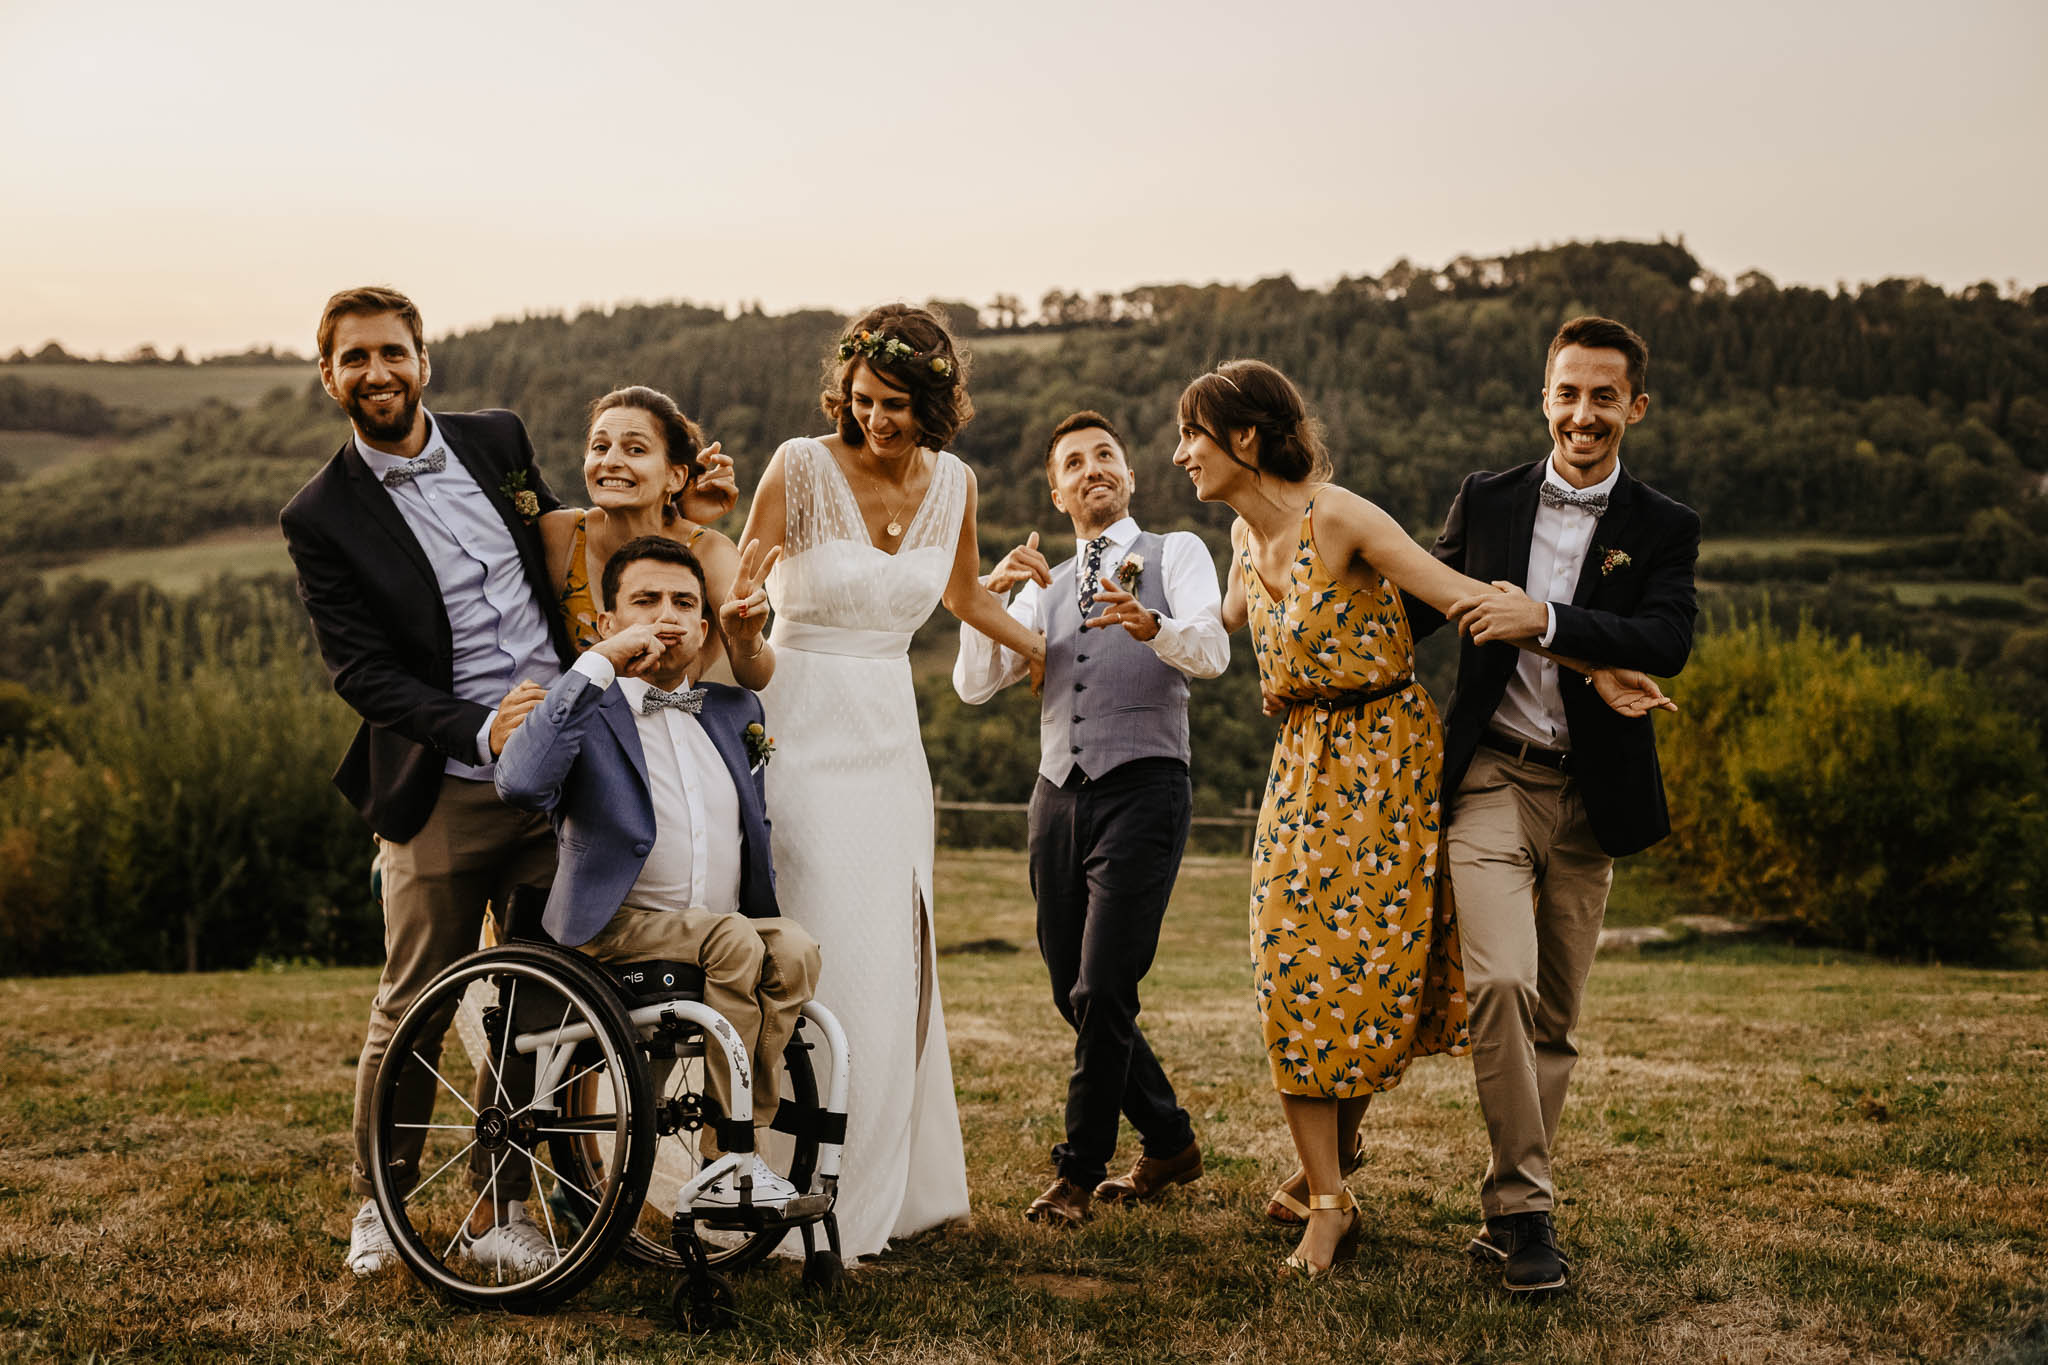 mariage-cocktail-cantal-ingold-16.jpg